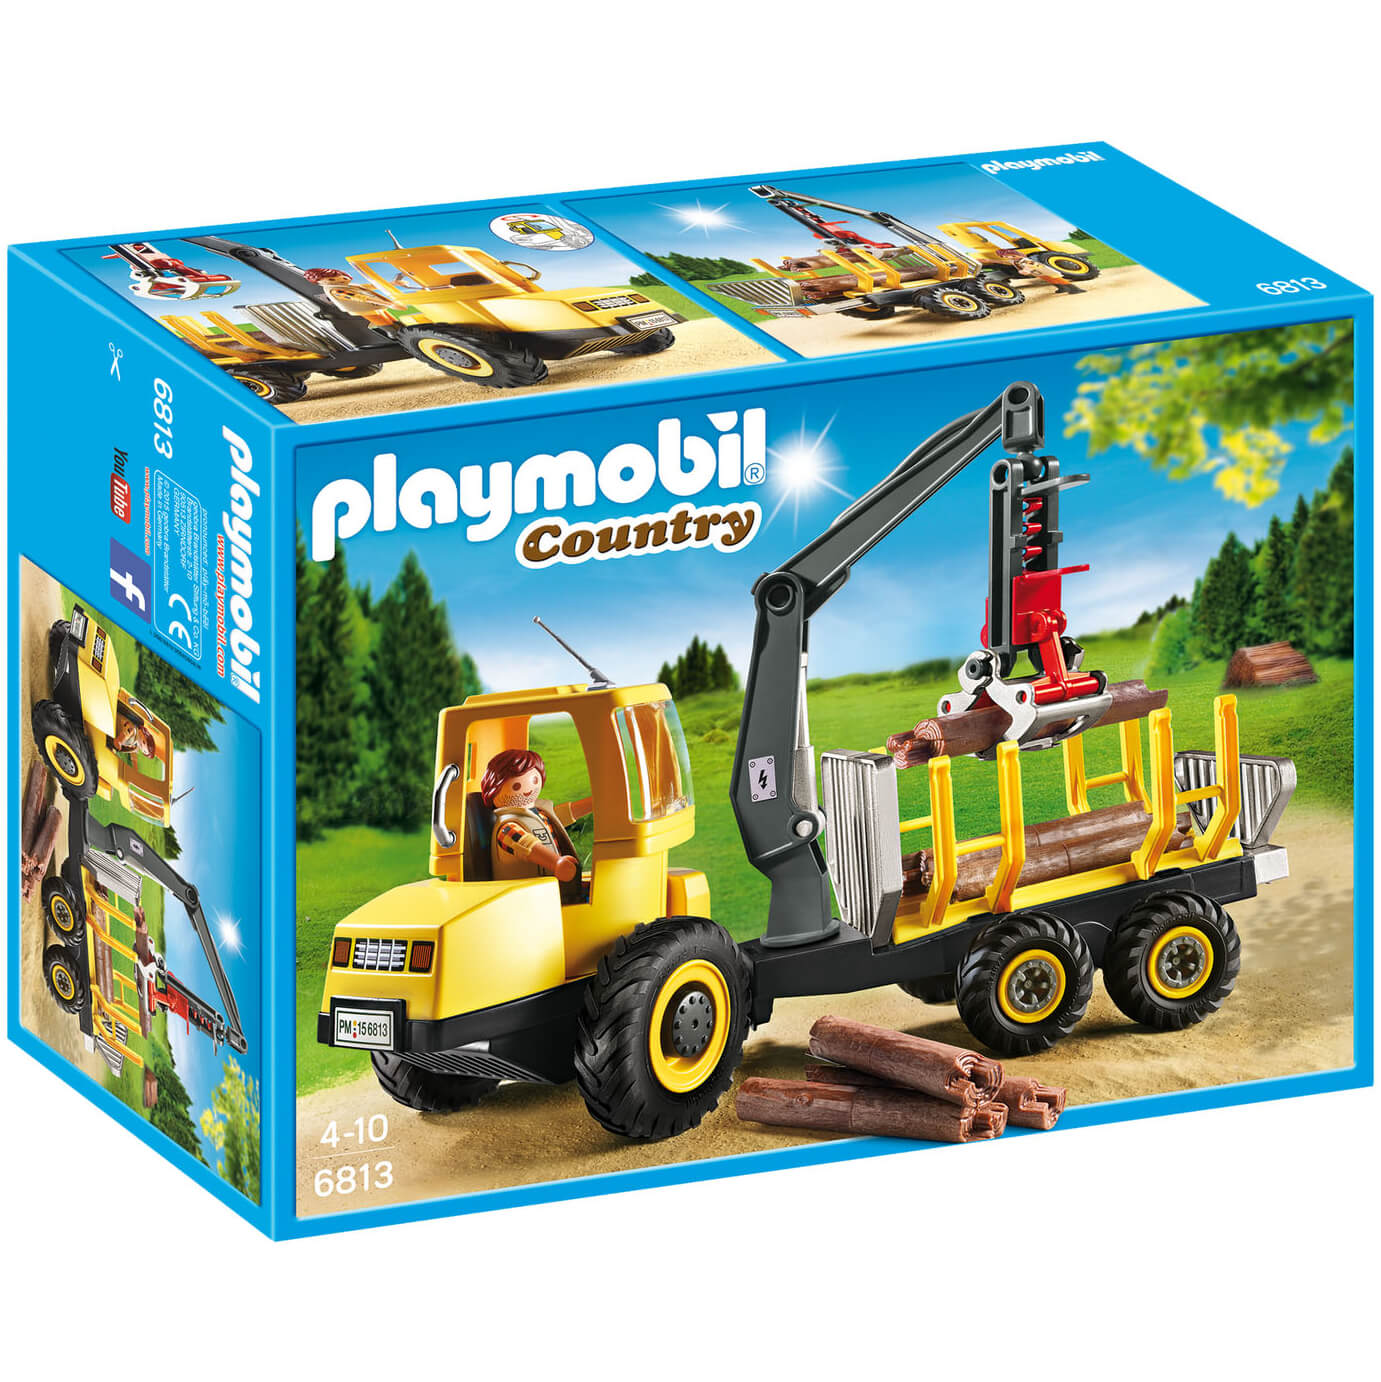 Playmobil Country Timber Transporter with Crane (6813)